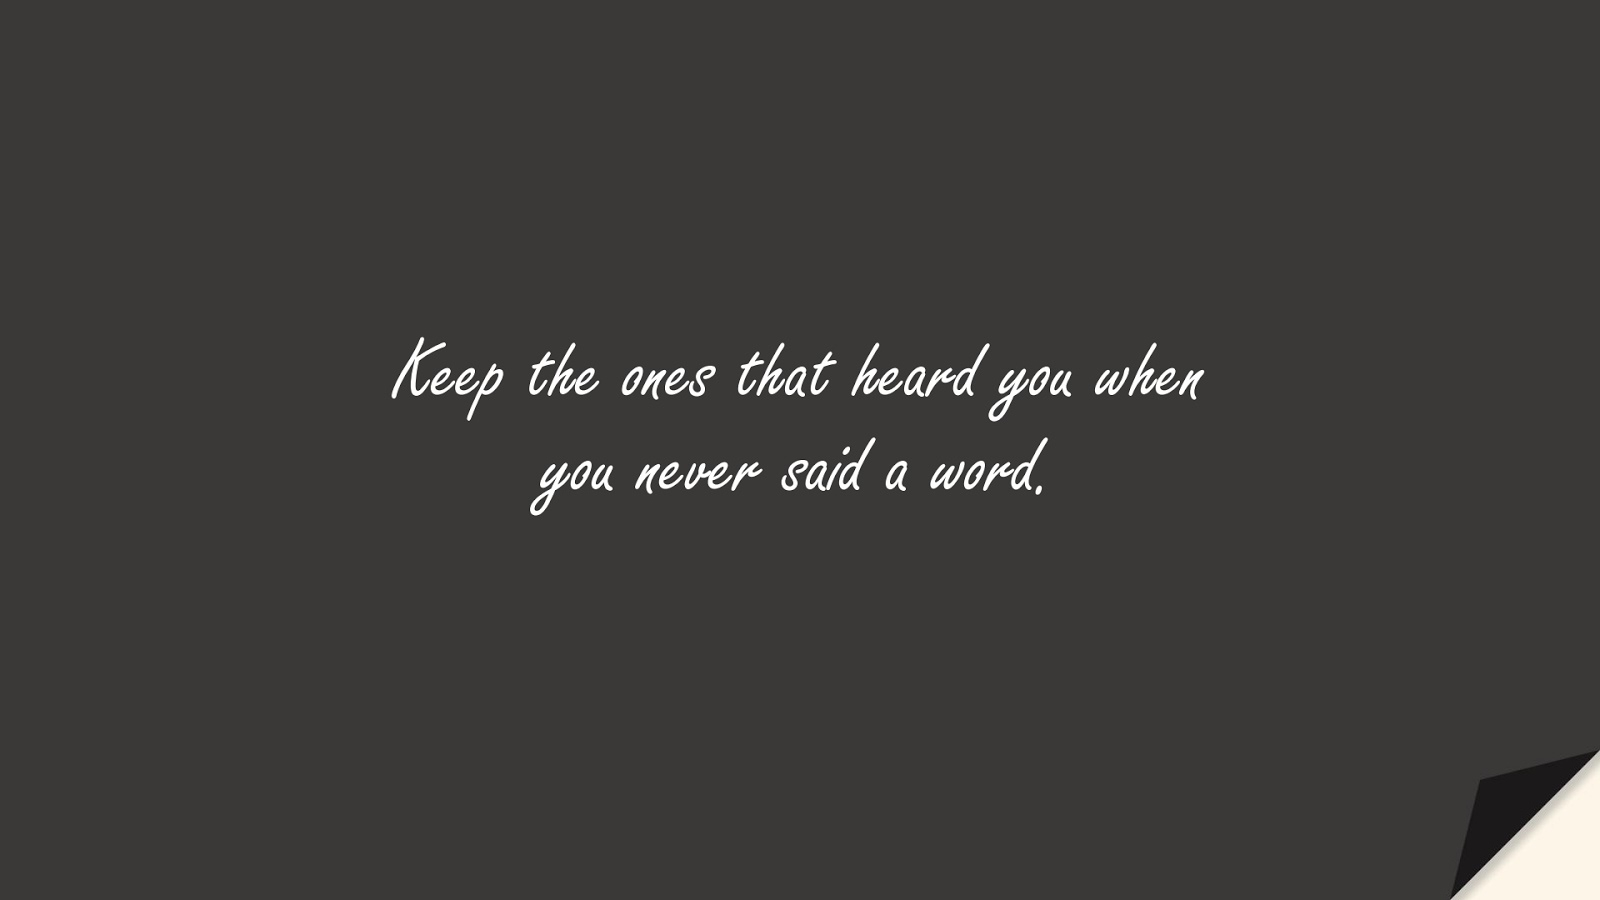 Keep the ones that heard you when you never said a word.FALSE